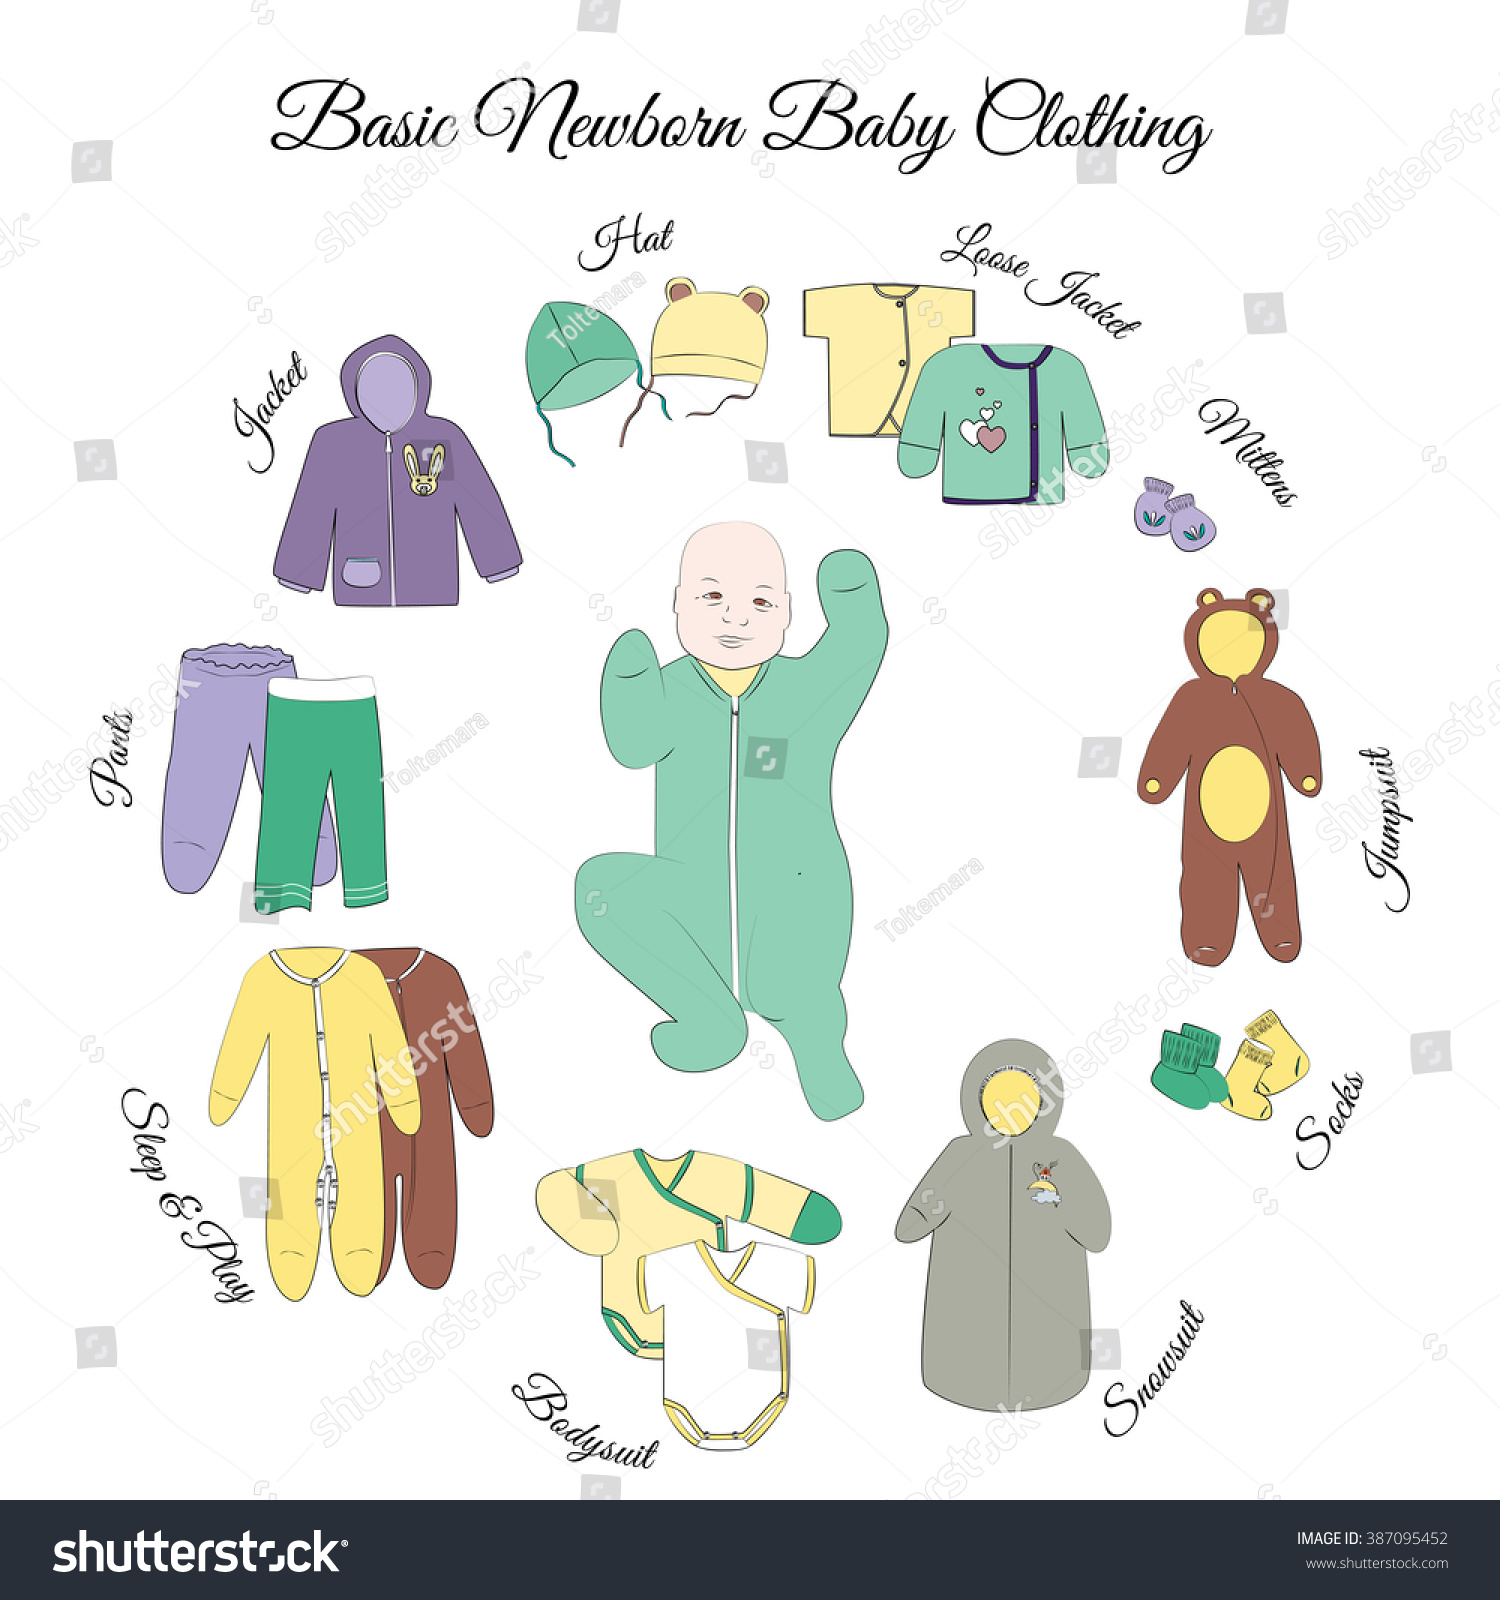 a607c8a3c25 Newborn Basic Clothing Set Comfortable Baby Stock Vector (Royalty ...